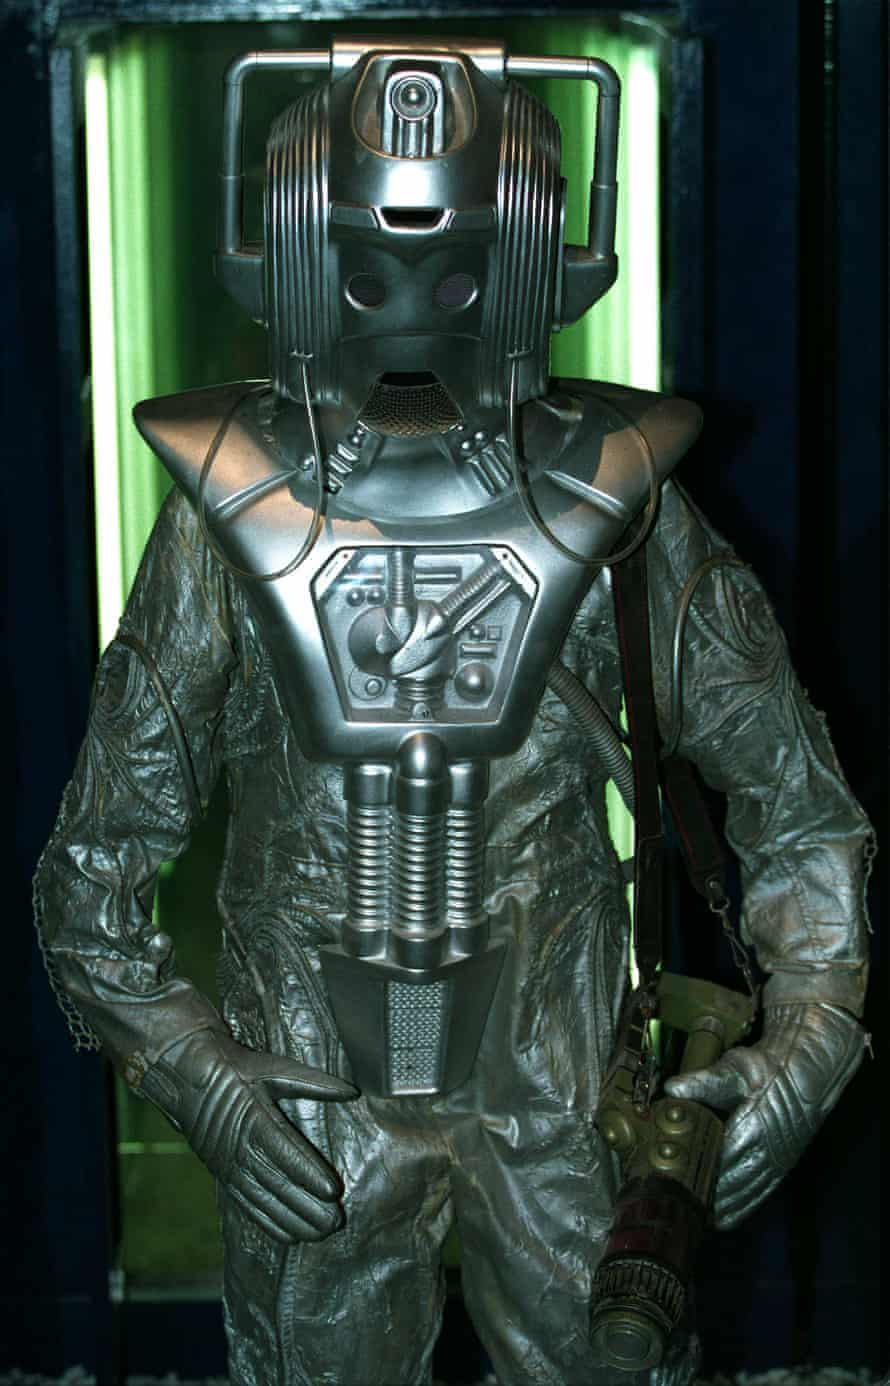 A proper 1980s Cyberman, ready to destroy the ones from the TARDIS, or wipe out all life on Earth.